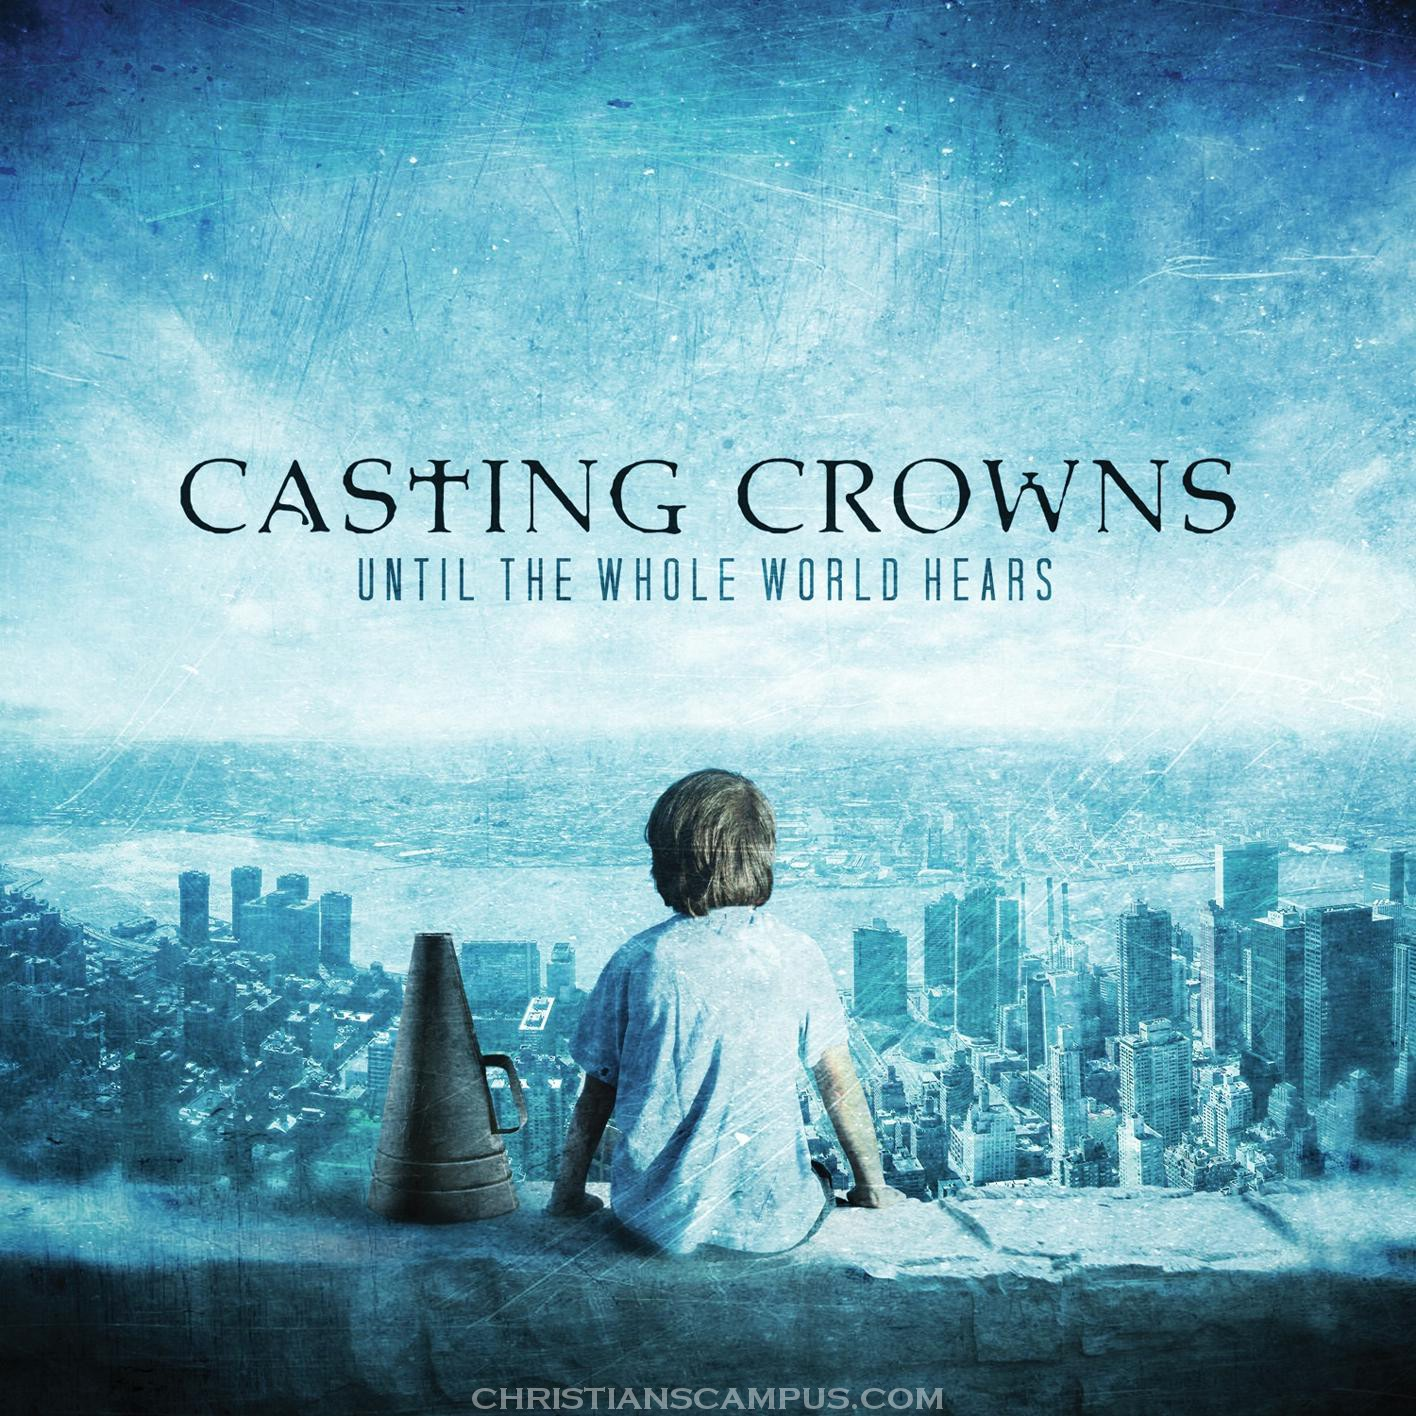 Casting Crowns - Until the Whole World Hears 2009 English